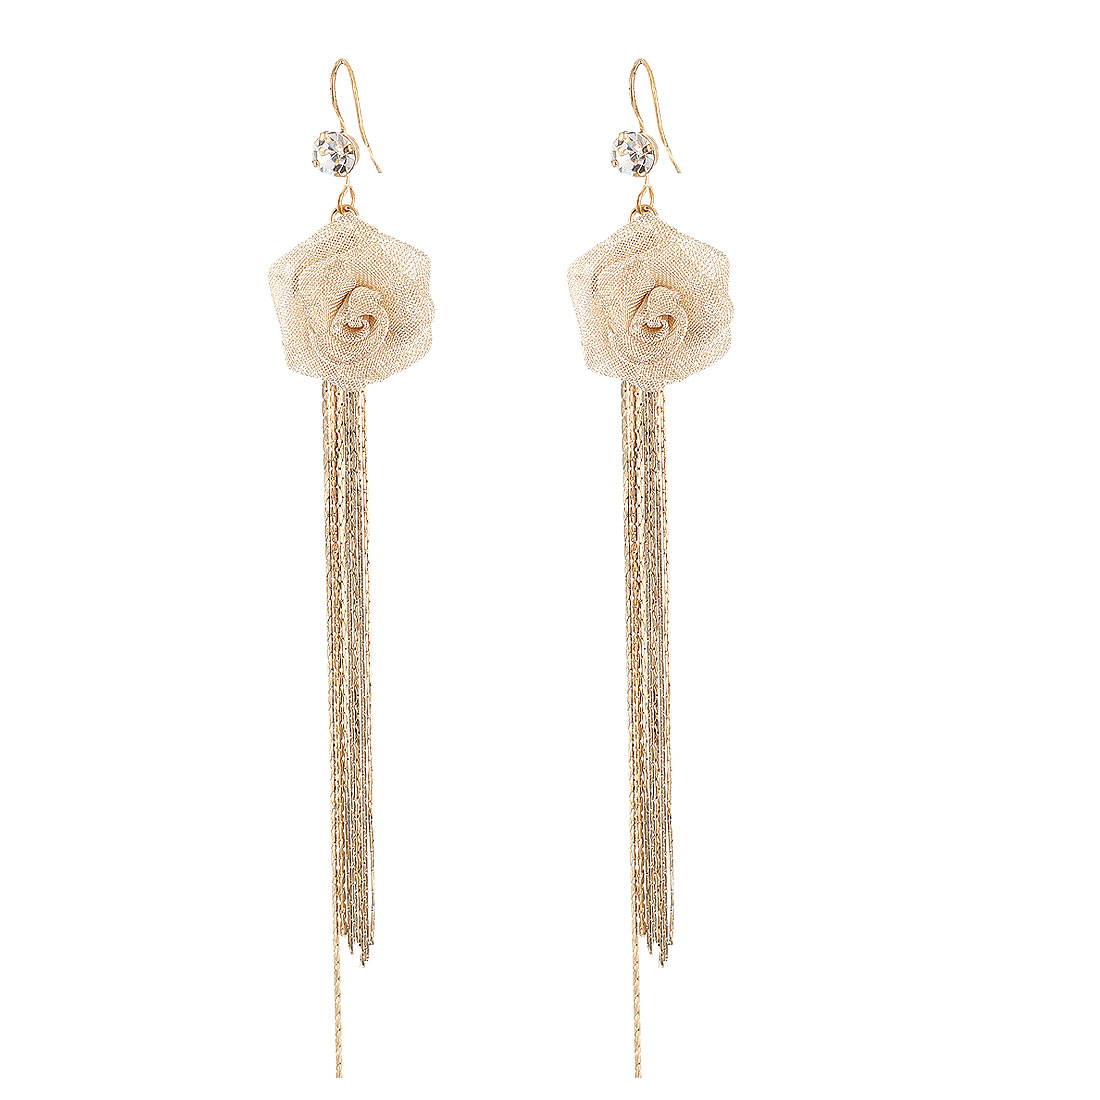 Lady Beige Nylon Meshy Flower Pendant Adorn Gold Tone Metal Chain Tassels Dangling Hook Earrings Pair